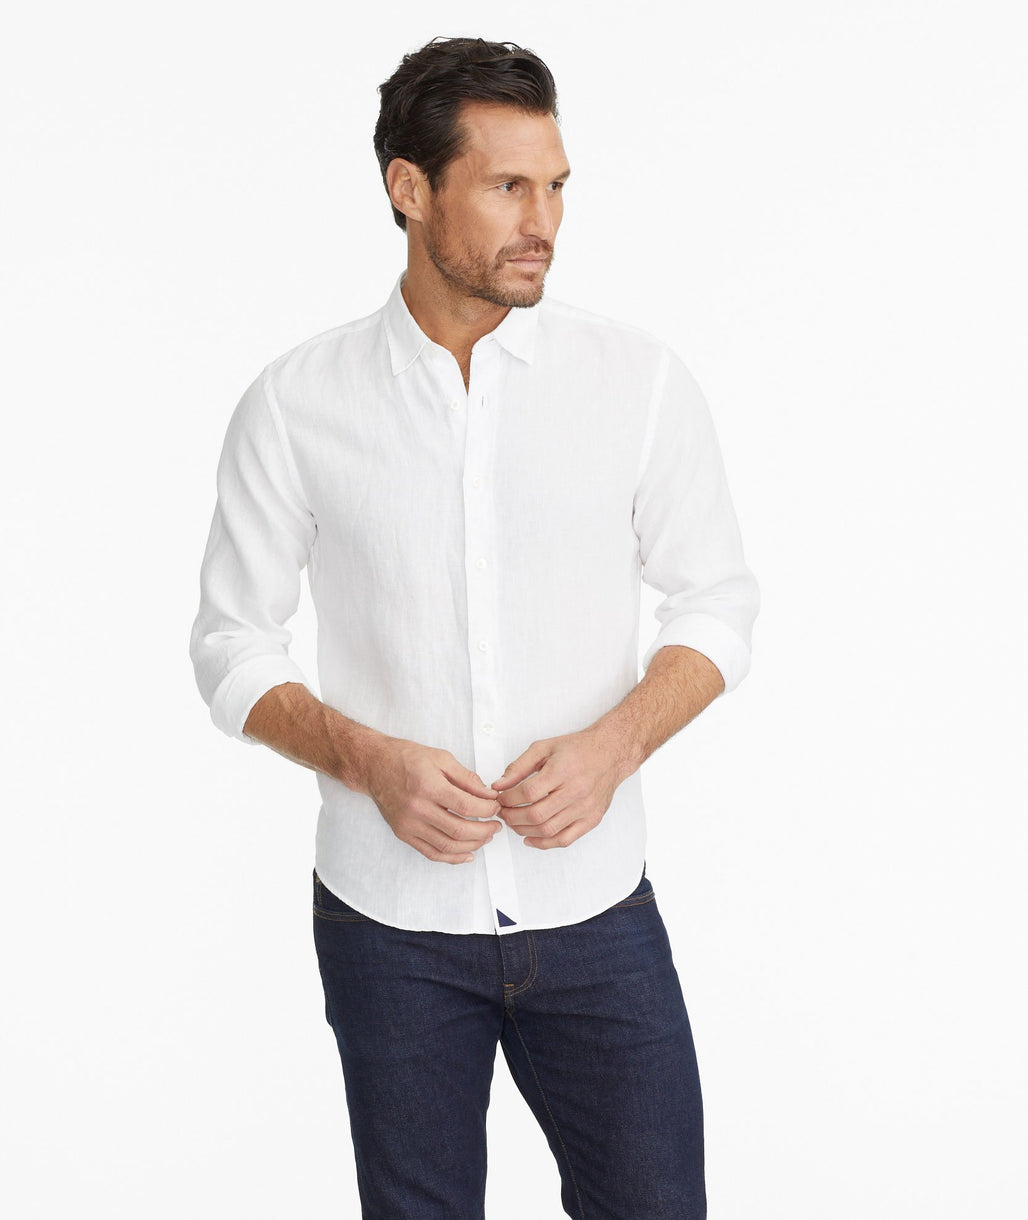 Model wearing a White Wrinkle-Resistant Linen Shirt